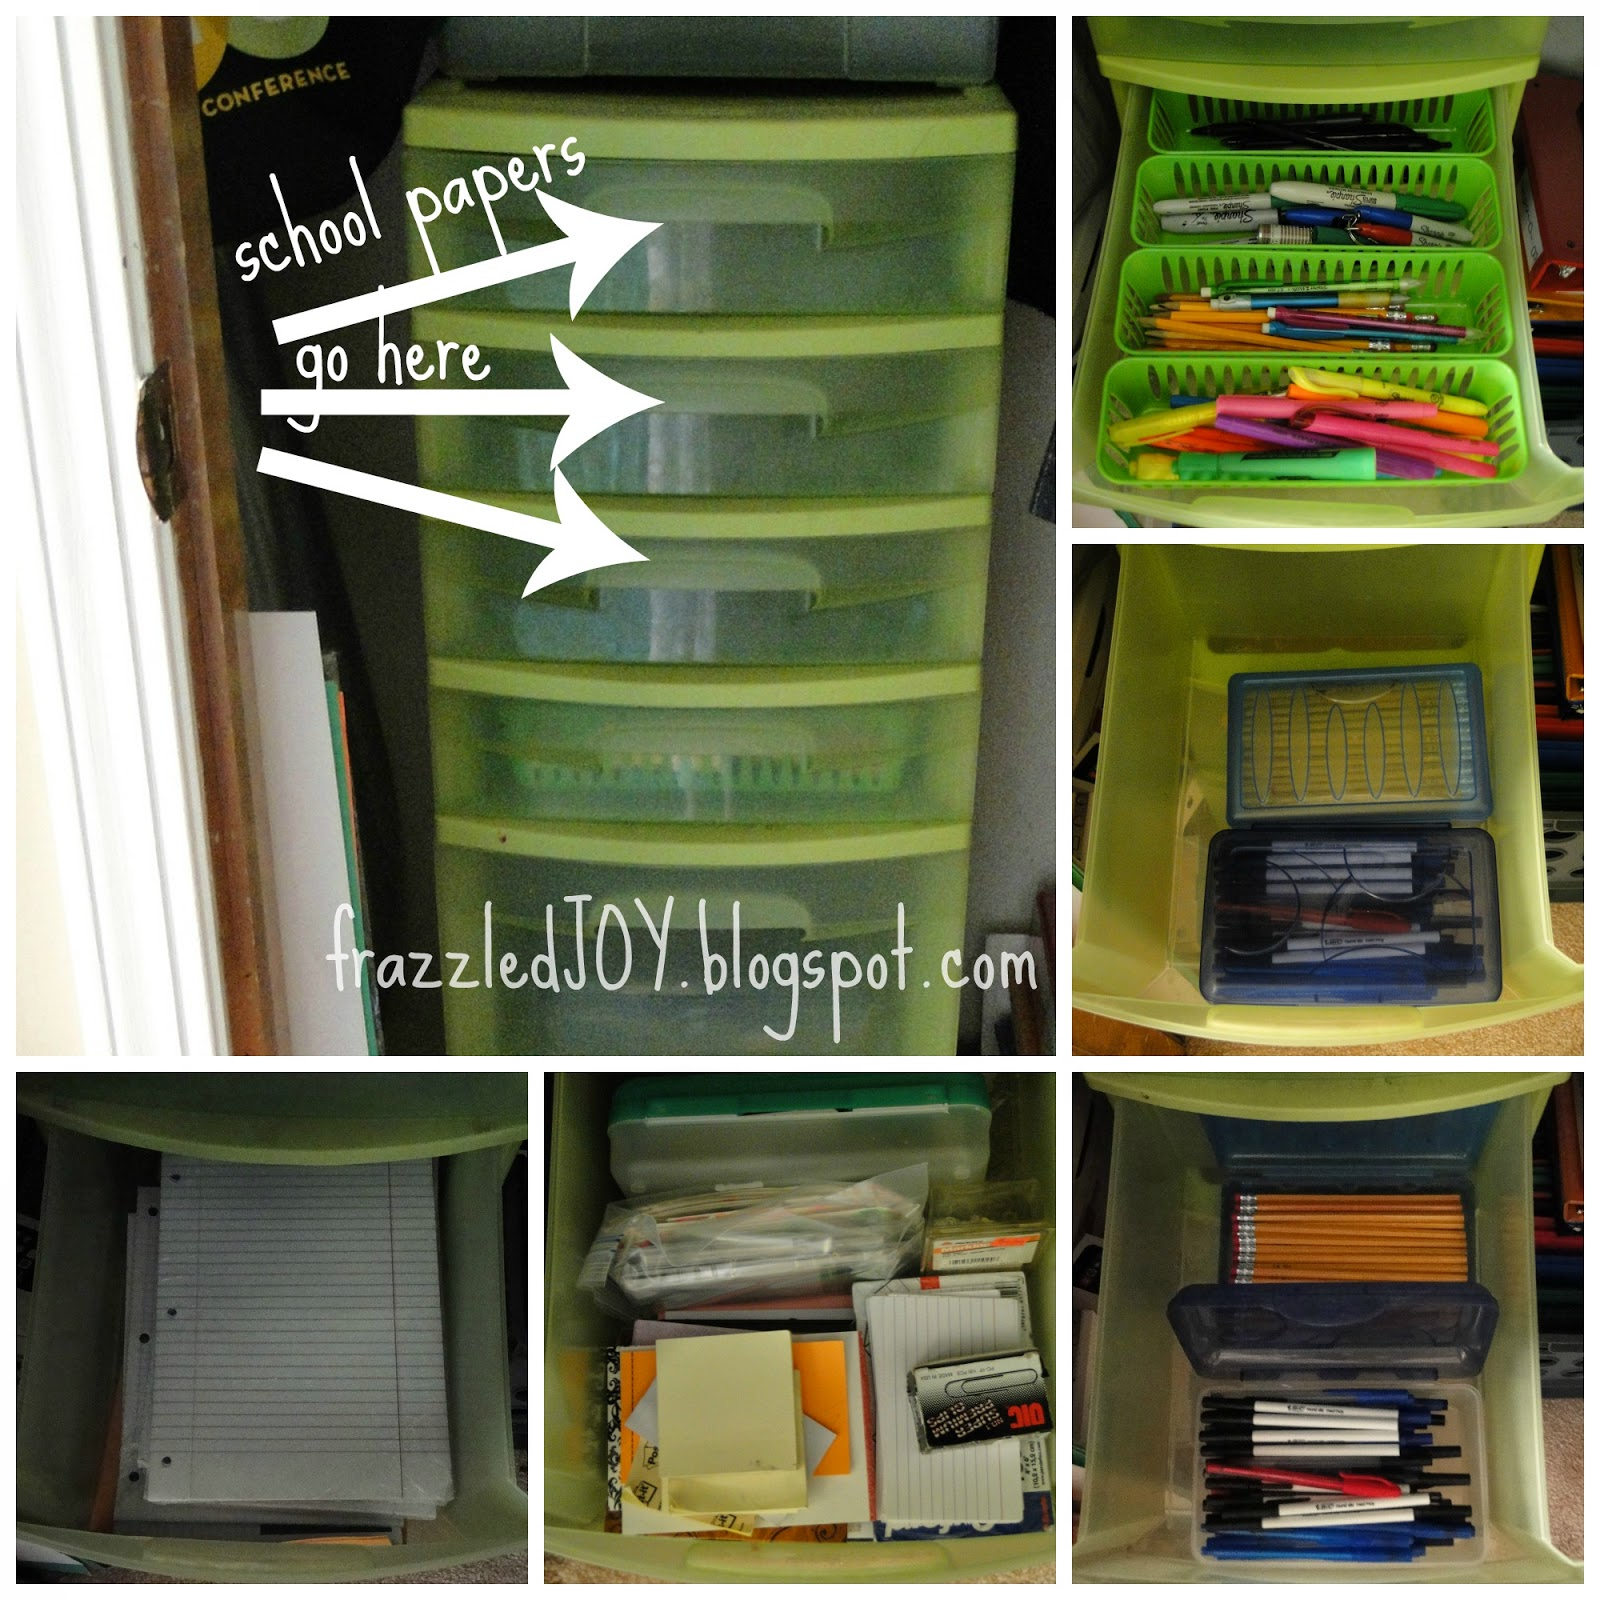 Use a tall plastic drawer unit to store various school/office supplies and keep them organized.